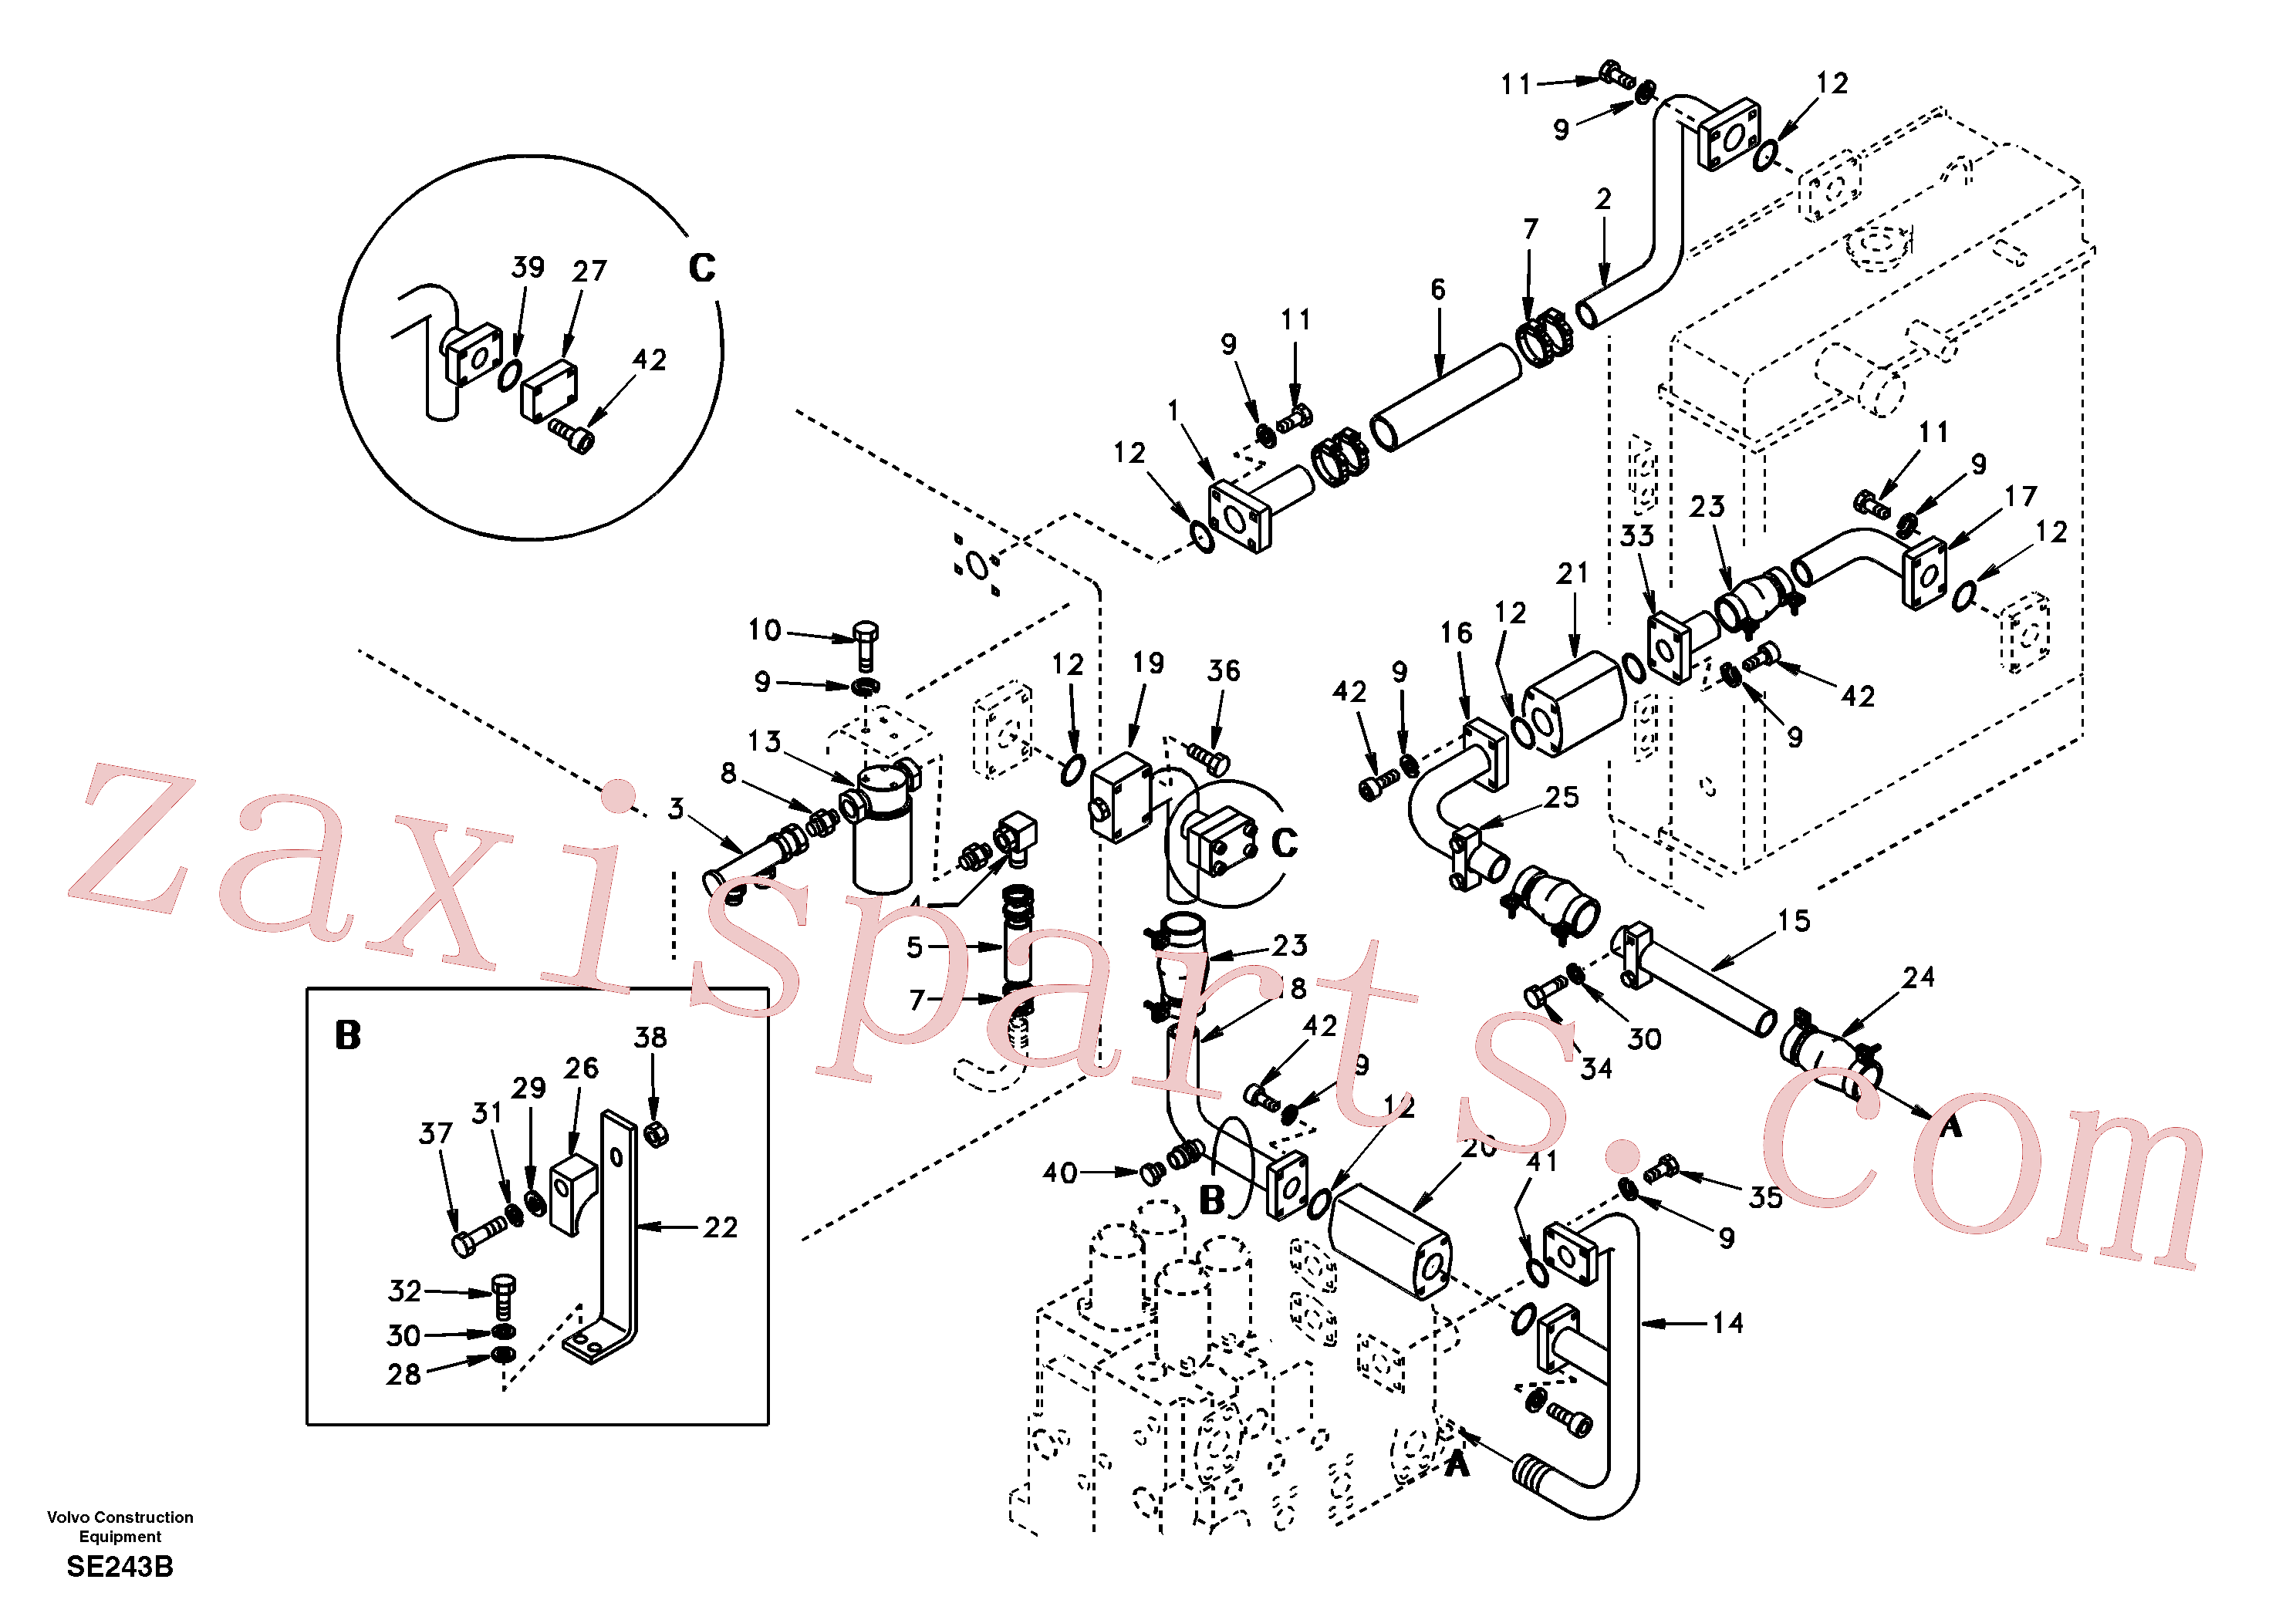 SA9444-06208 for Volvo Hydraulic system, hydraulic tank to hydraulic oil cooler(SE243B assembly)